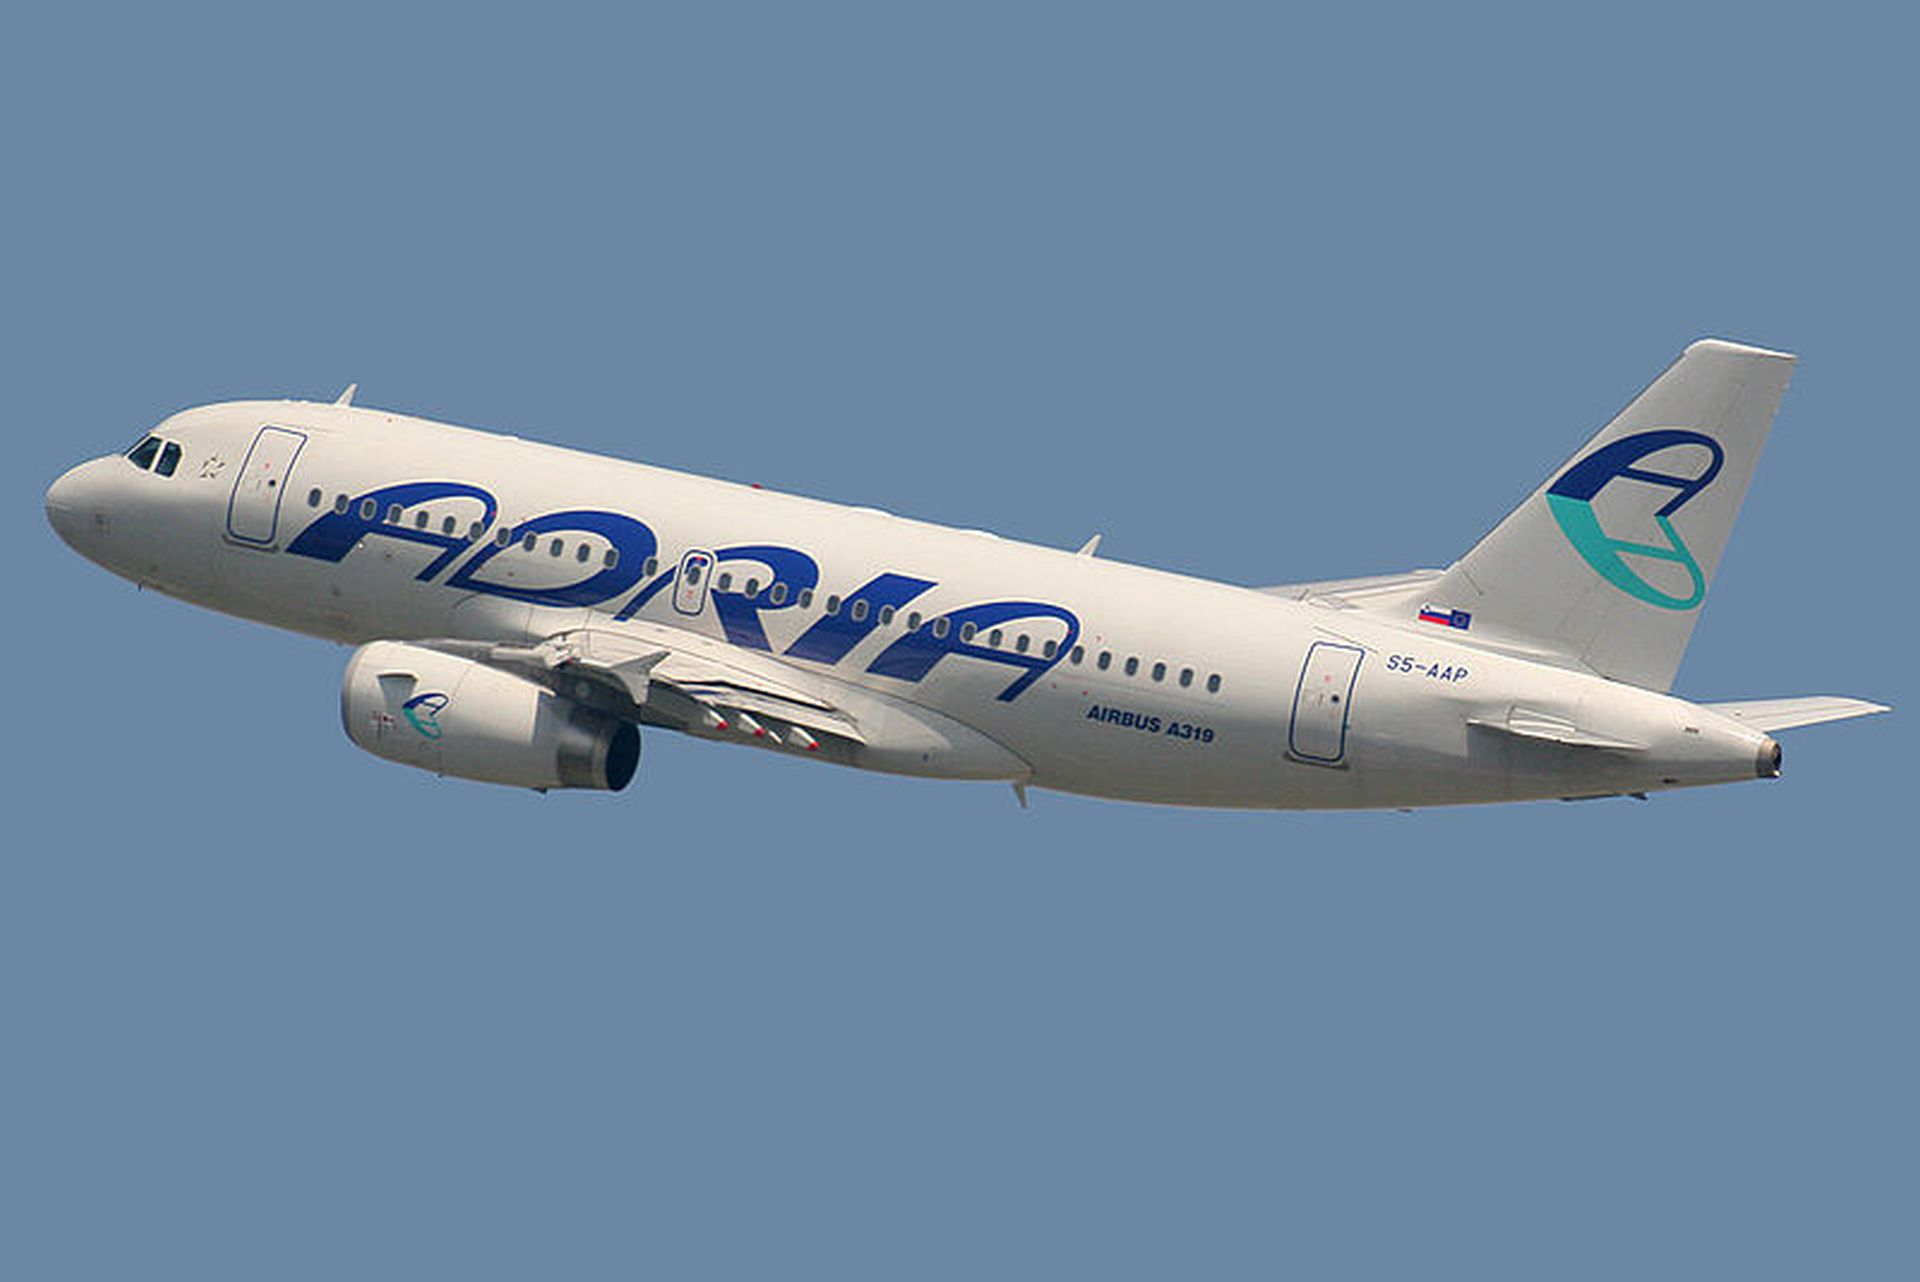 Airbus A319 společnosti Adria Airways. Foto: Autor: Curimedia – Flickr: Airbus A319-132 Adria Airways S5-AAP, CC BY 2.0, https://commons.wikimedia.org/w/index.php?curid=19869672